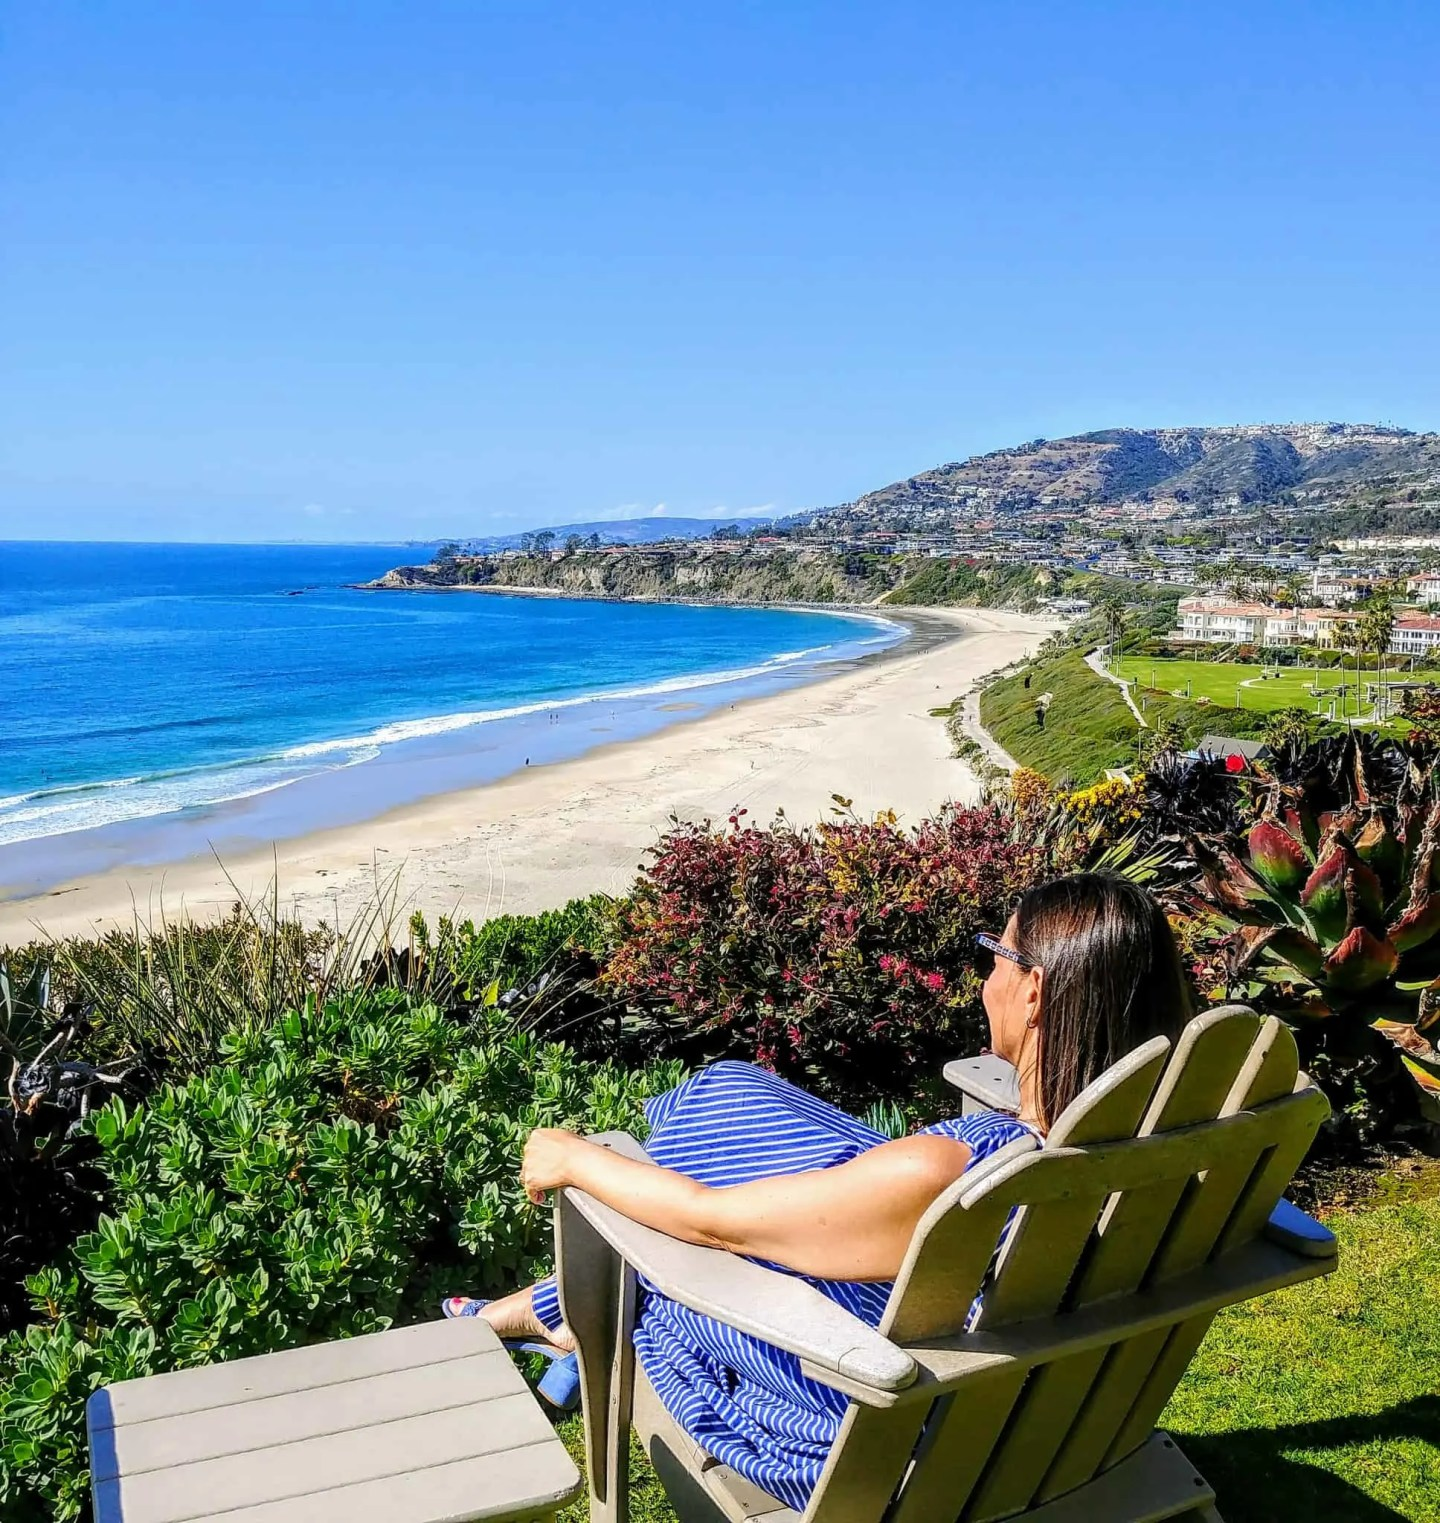 Top Places To See in California